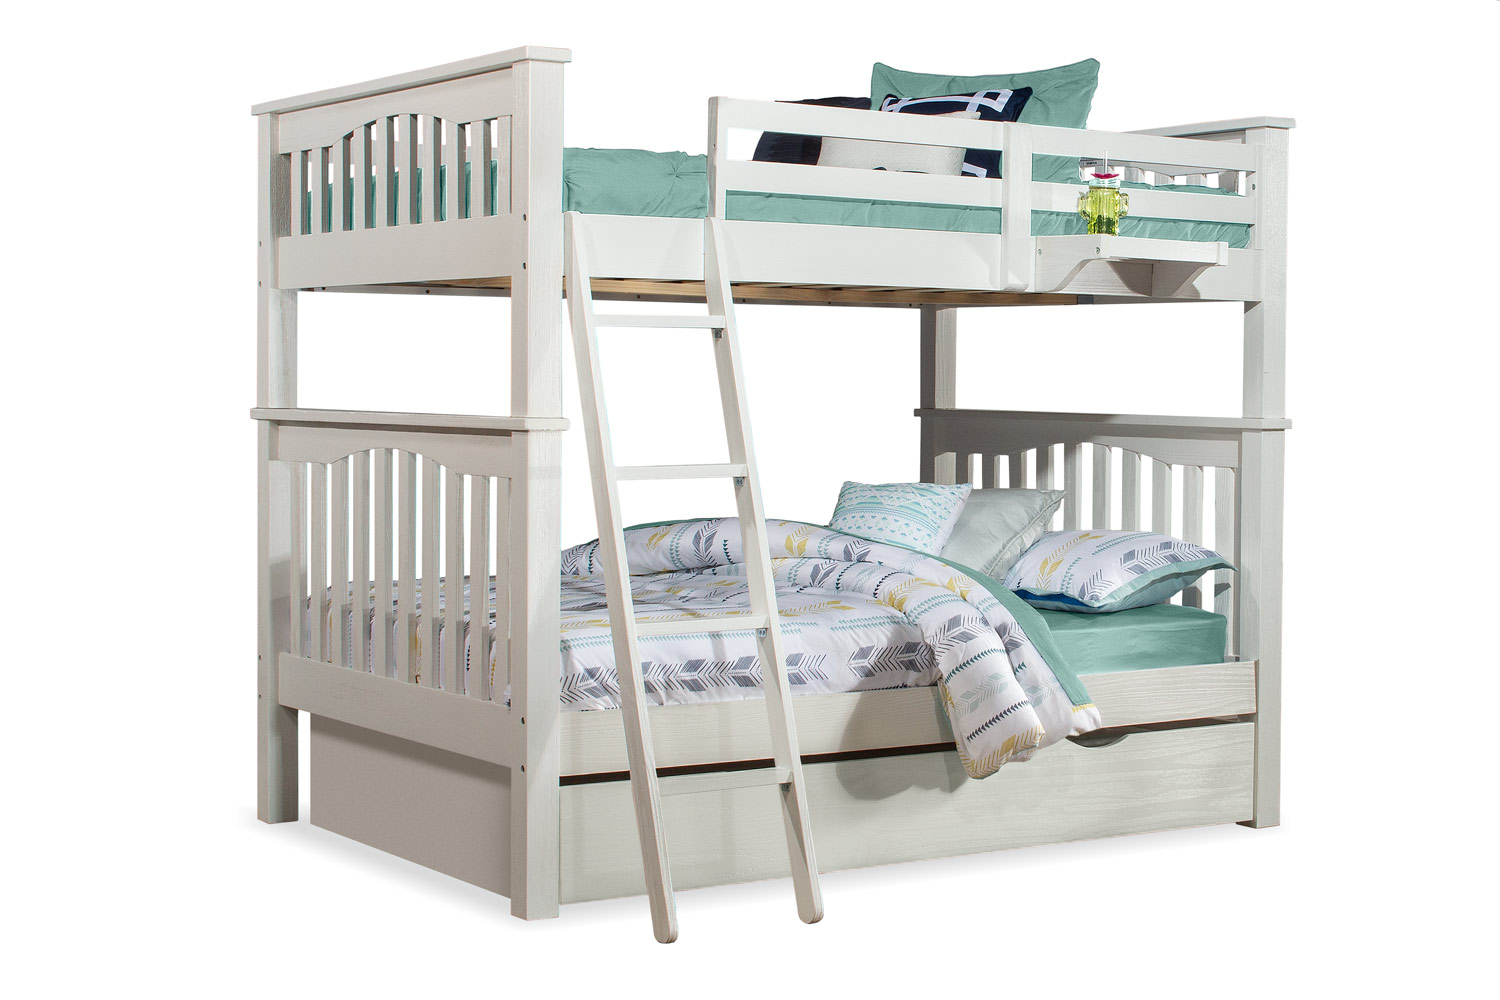 NE Kids Highlands Harper Full/Full Bunk Bed with Trundle and Hanging Nightstand - White Finish